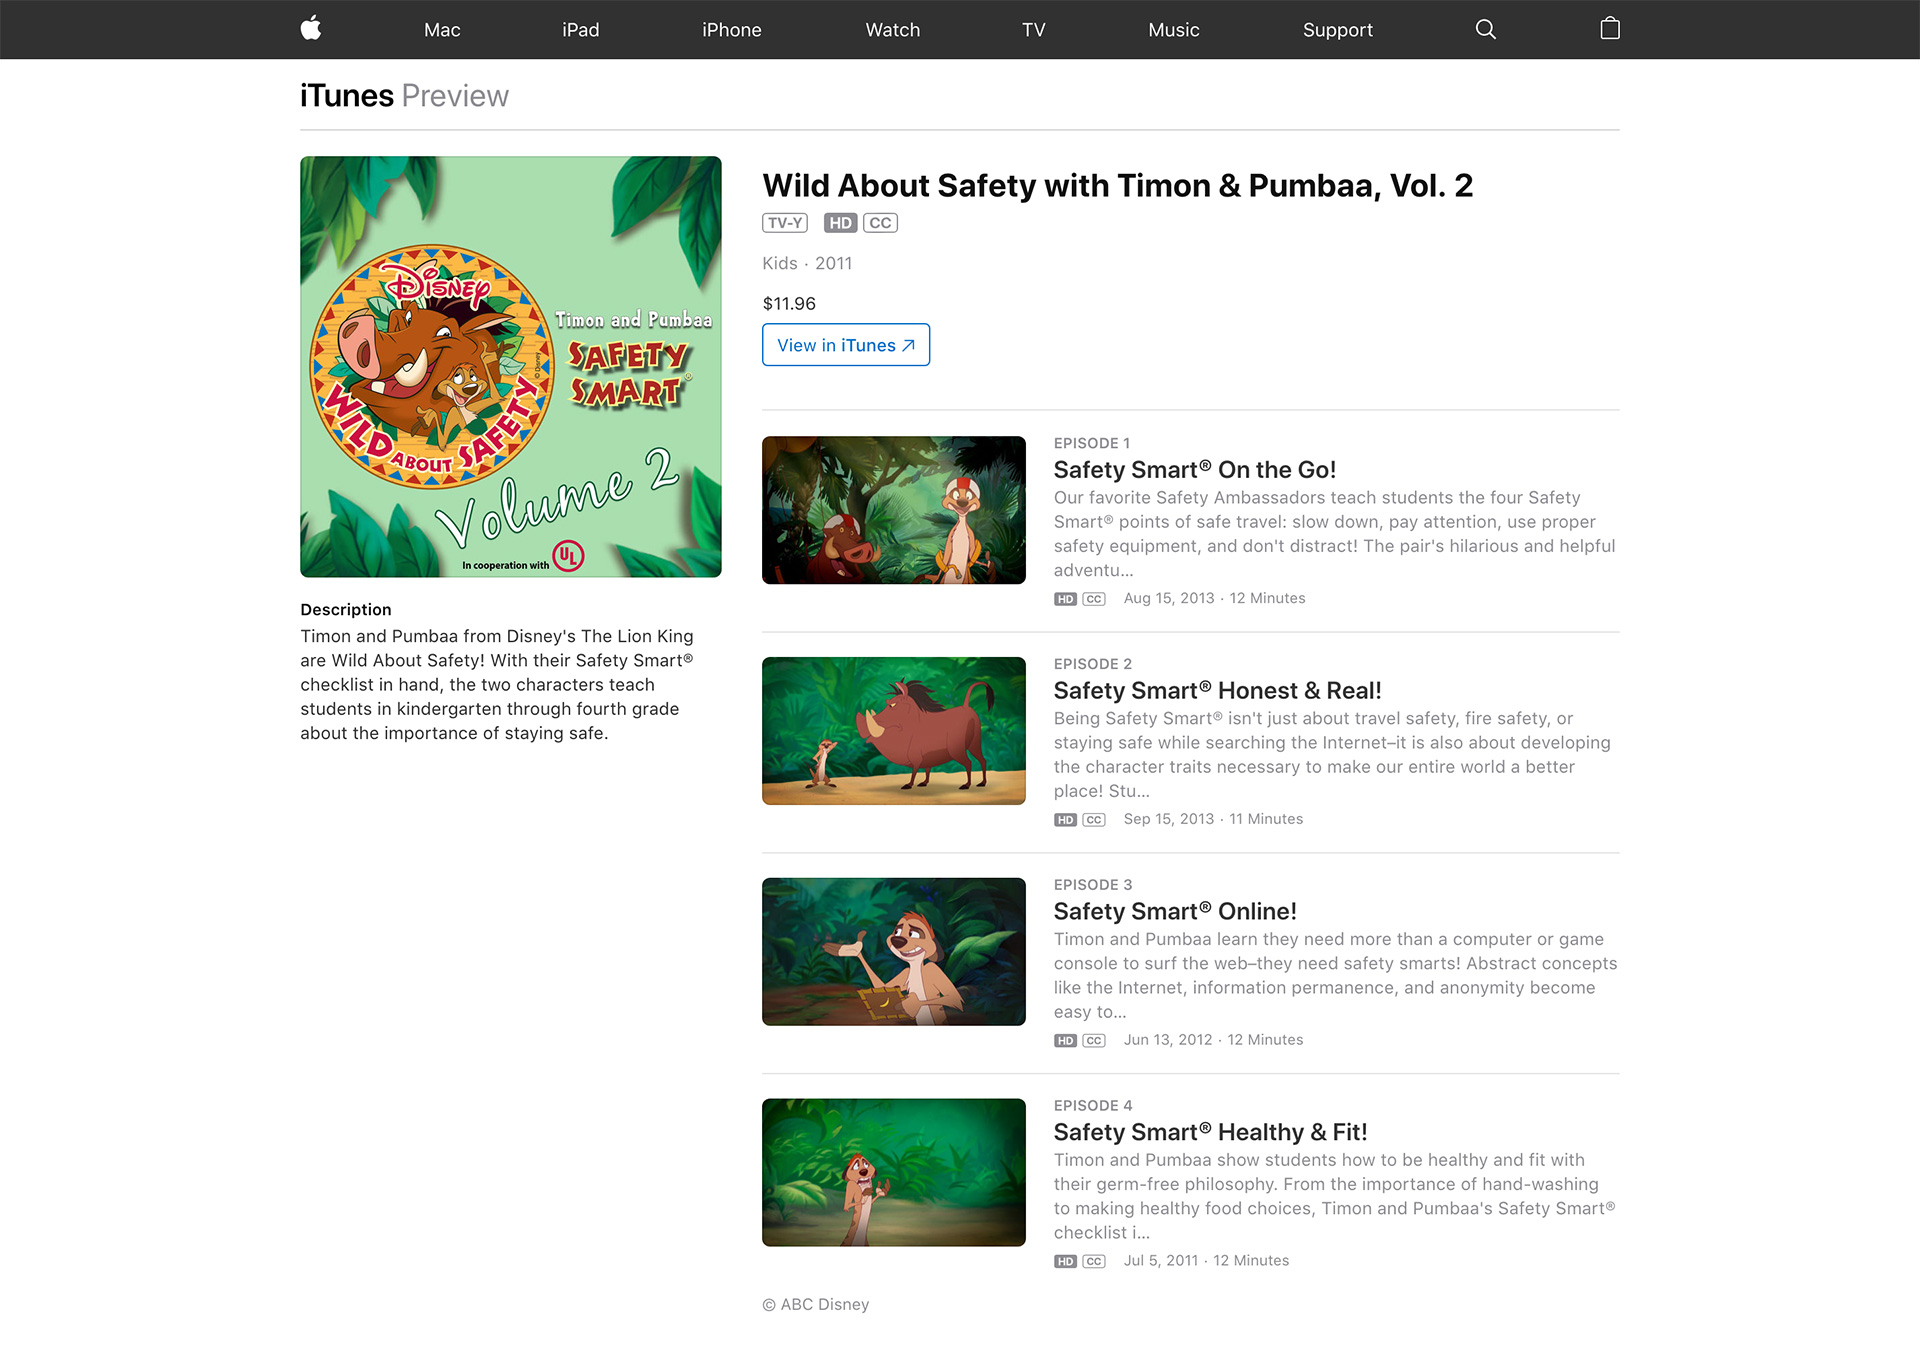 Wild About Safety with Timon & Pumbaa series on iTunes.